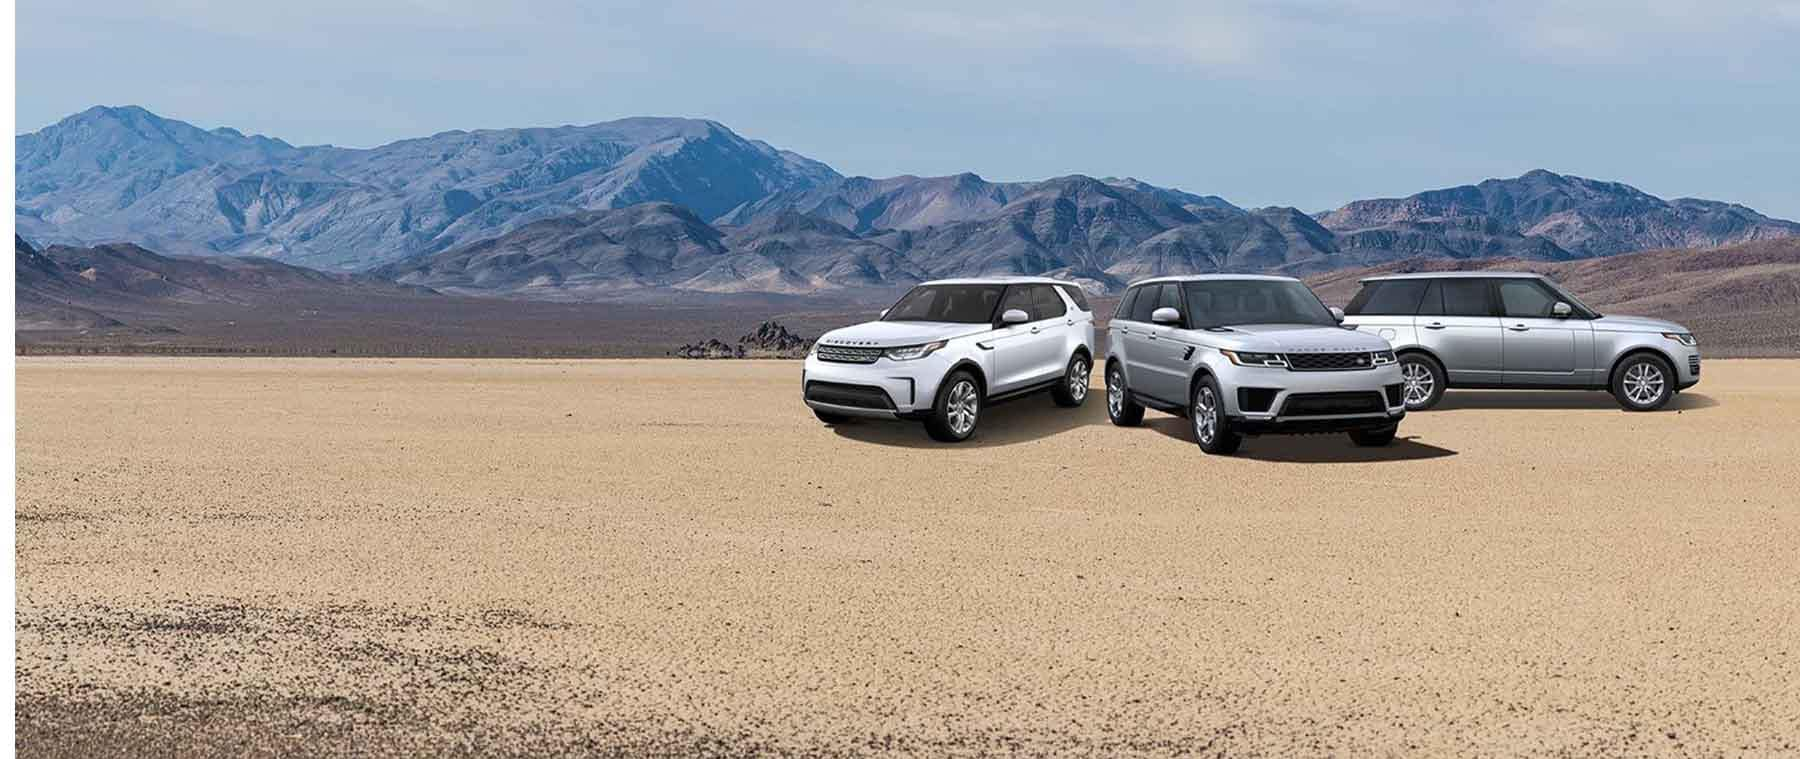 2018 Land Rover Models